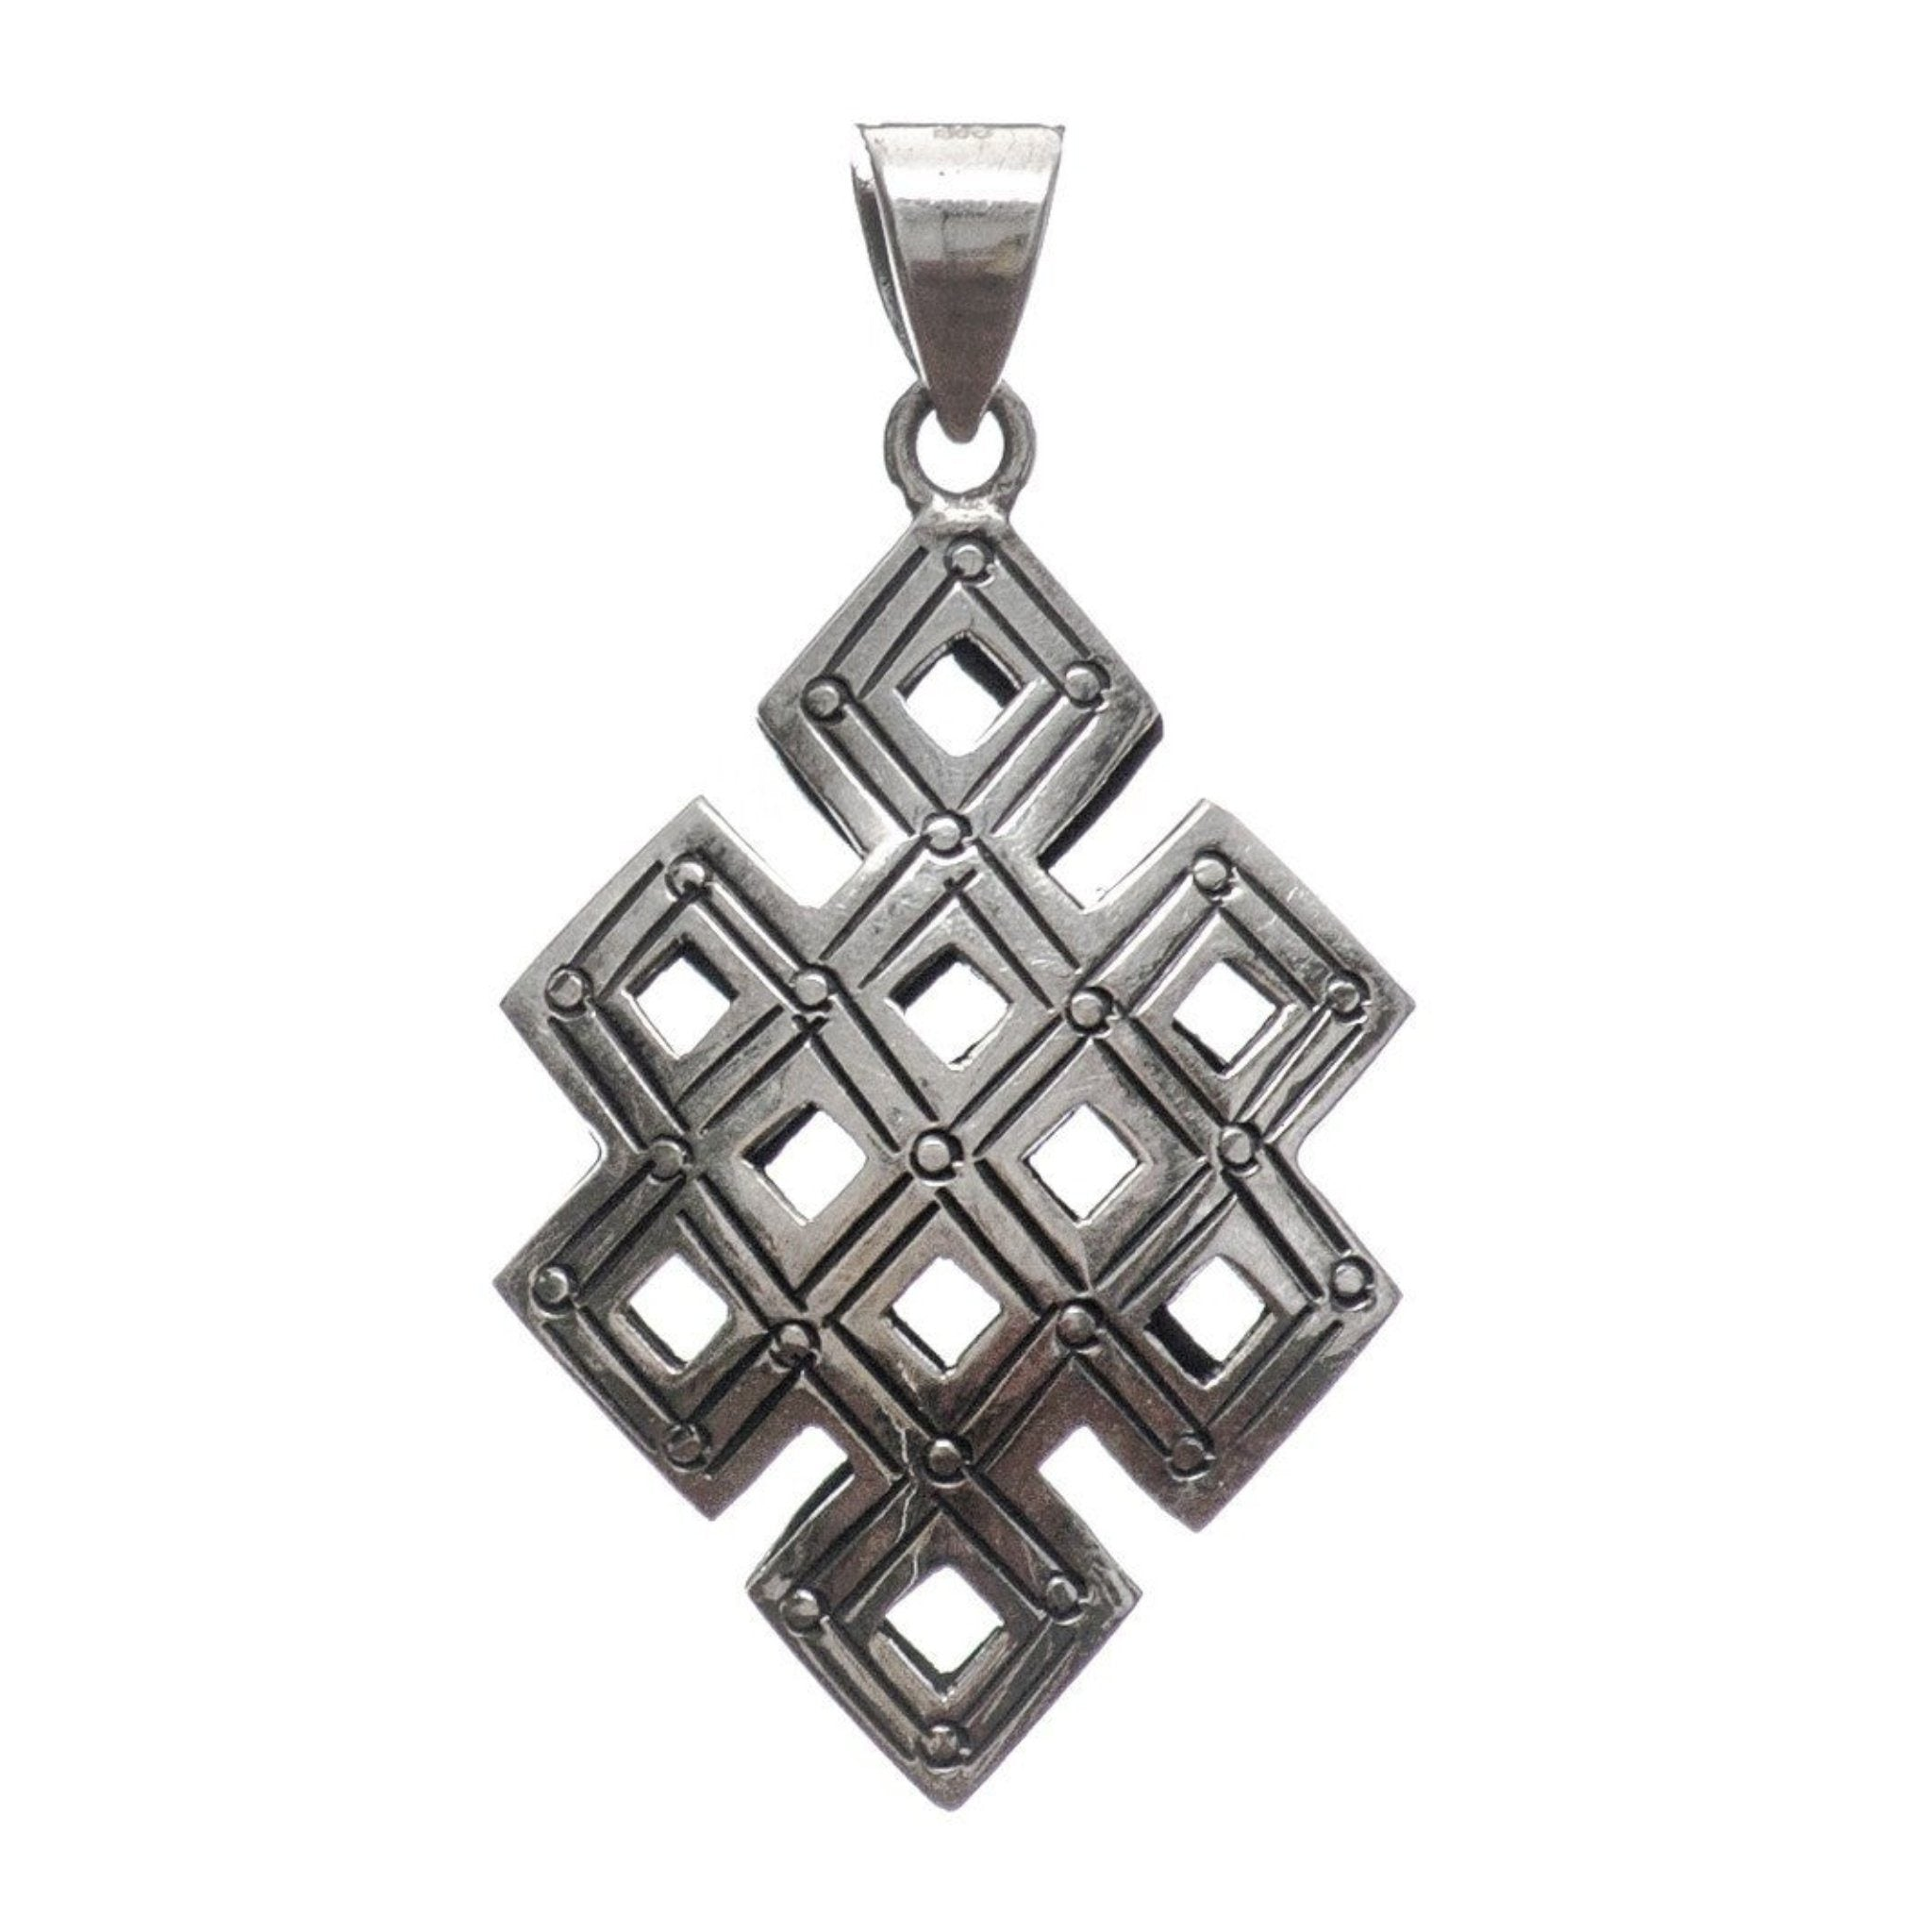 Hollow Etched Endless Knot Pendant Yak & Yeti